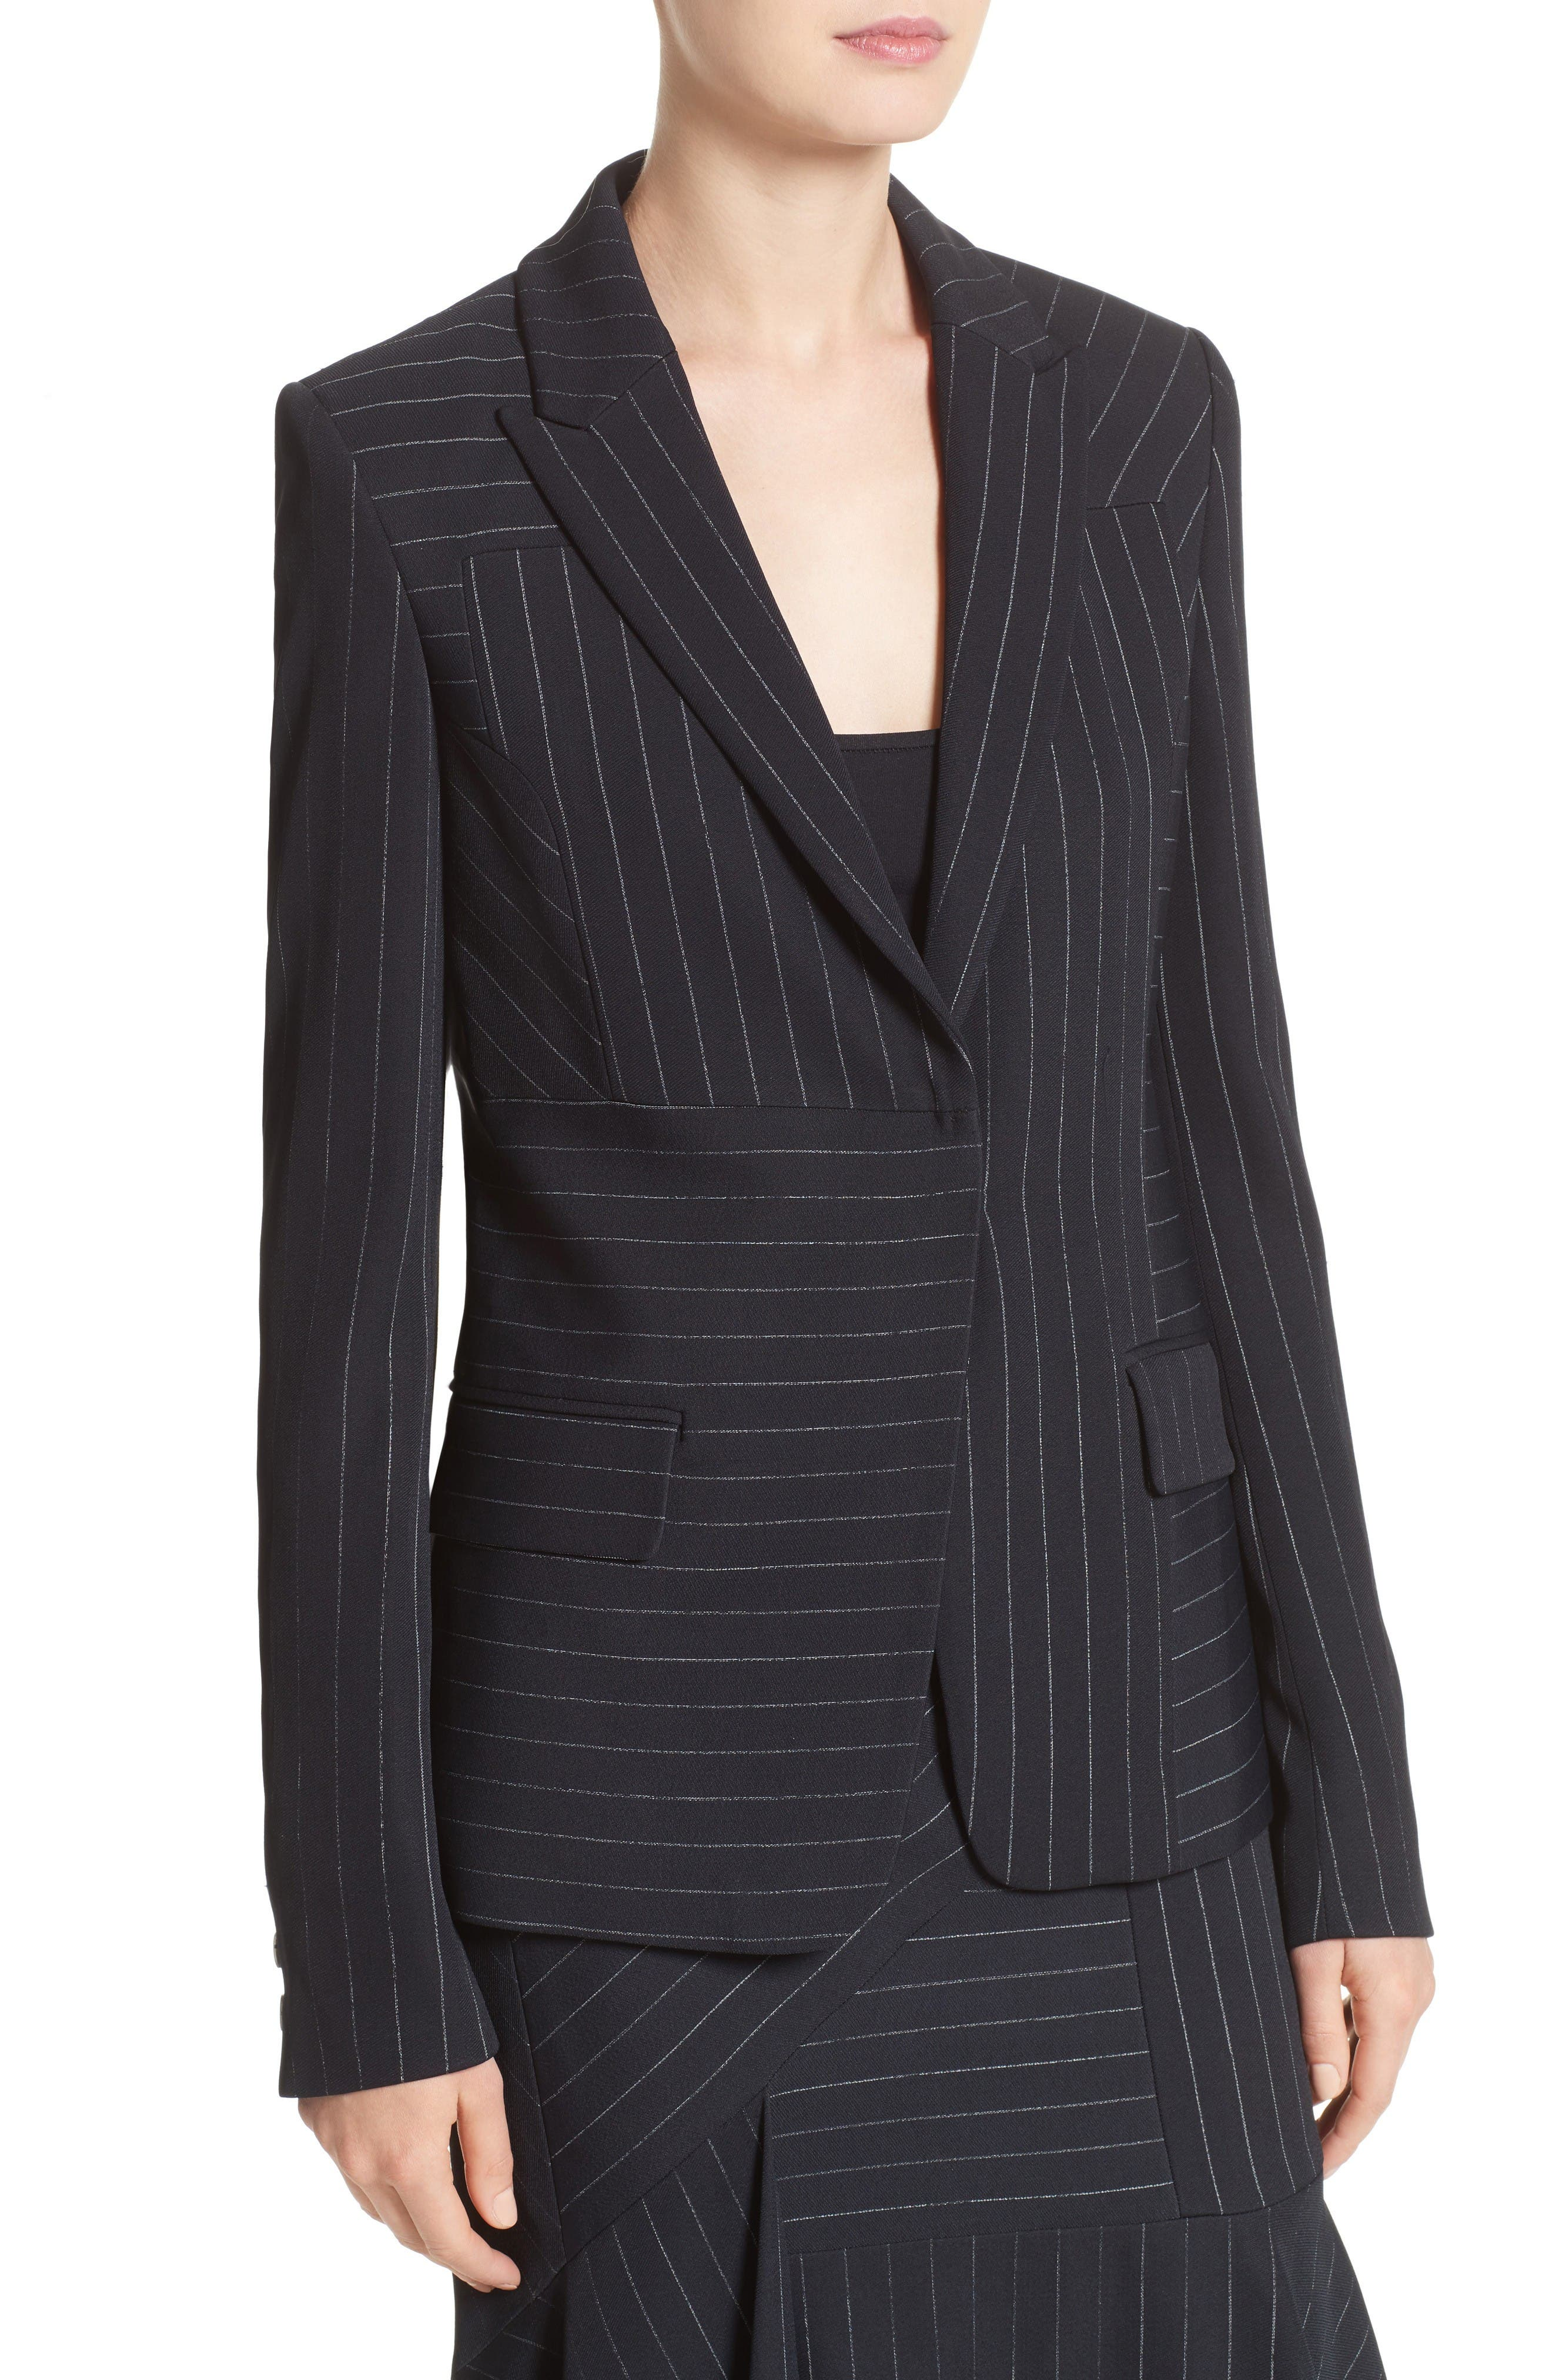 Pinstripe Stretch Jacket,                             Alternate thumbnail 7, color,                             Black/ Chalk